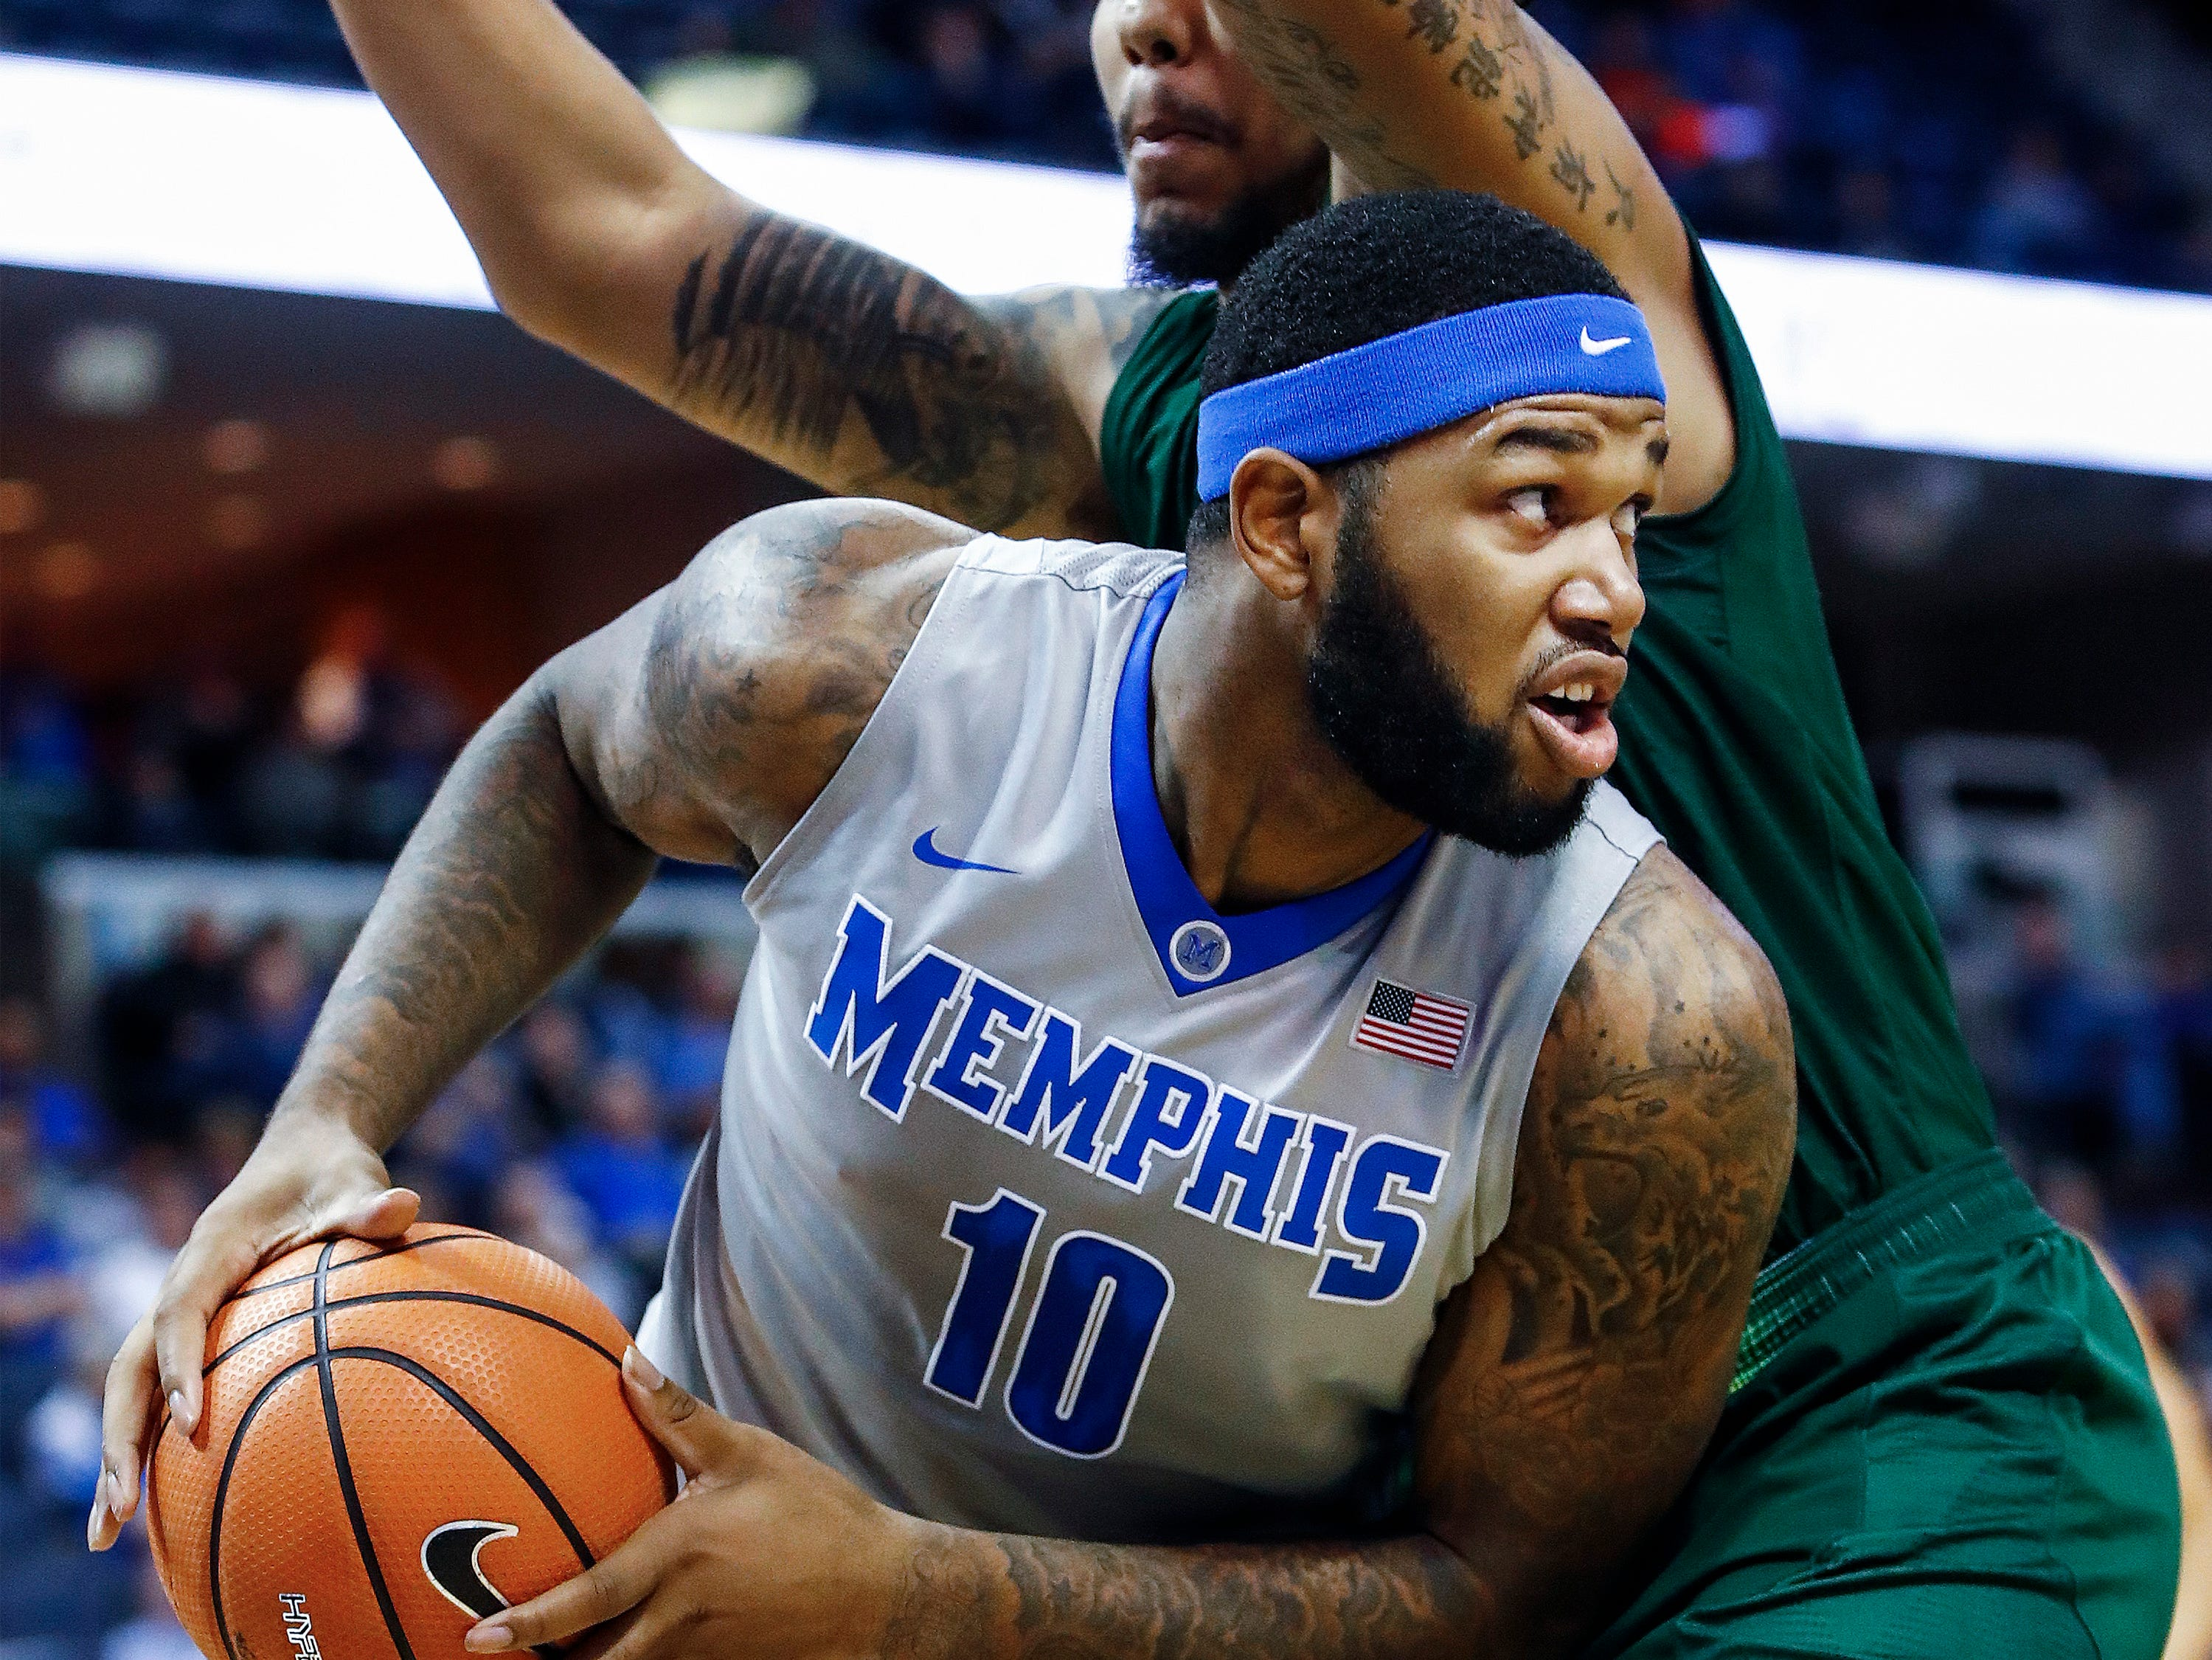 Memphis forward Mike Parks Jr. (left) looks for an outlet pass against the USF defense during first half action at the FedExForum in Memphis Tenn., Thursday, March 1, 2018.